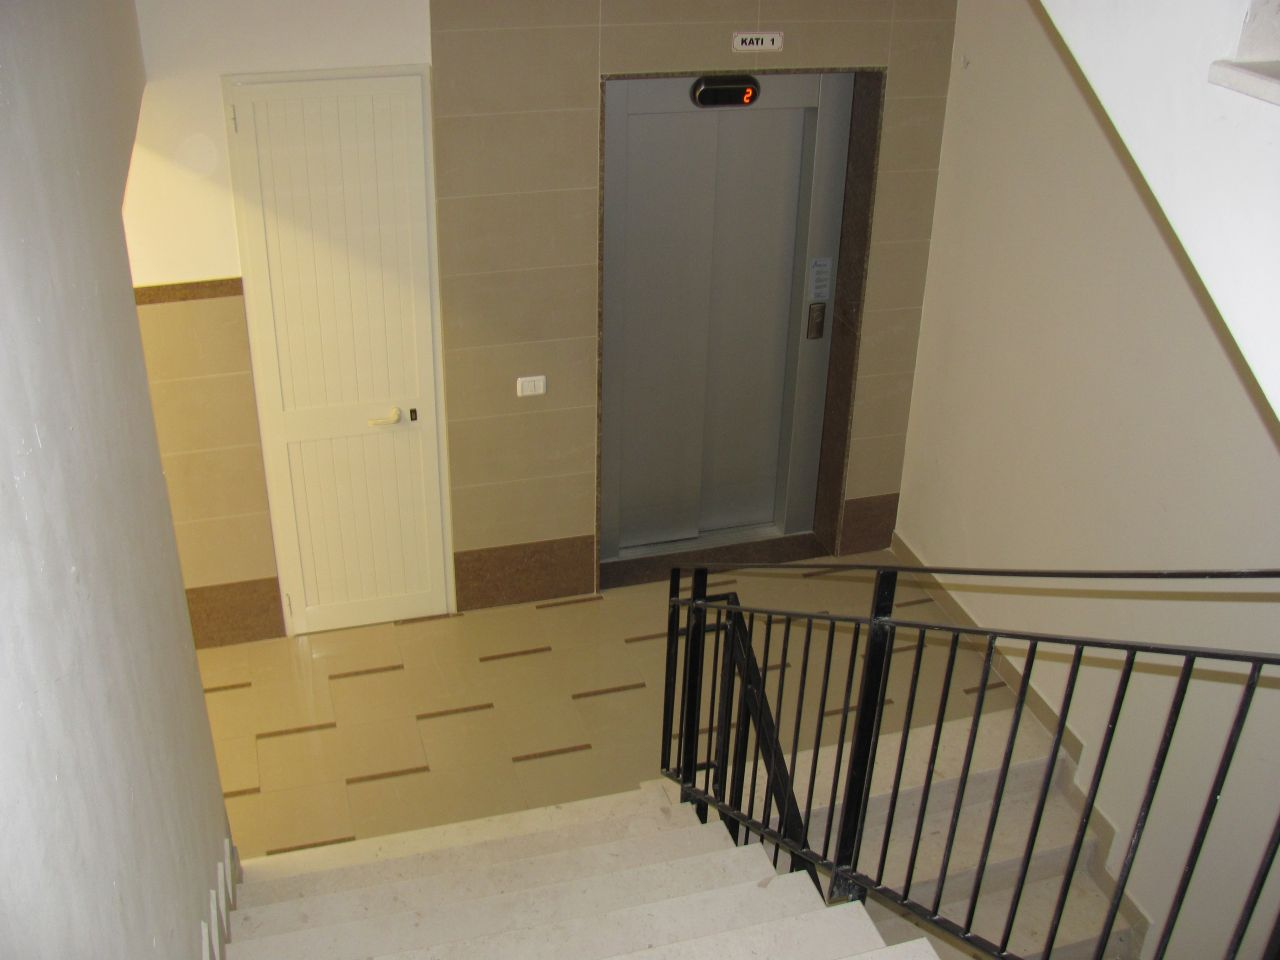 Apartment for Sale in Komuna Parisit, in Tirana, offered by Albania Property Group. The quality is good.